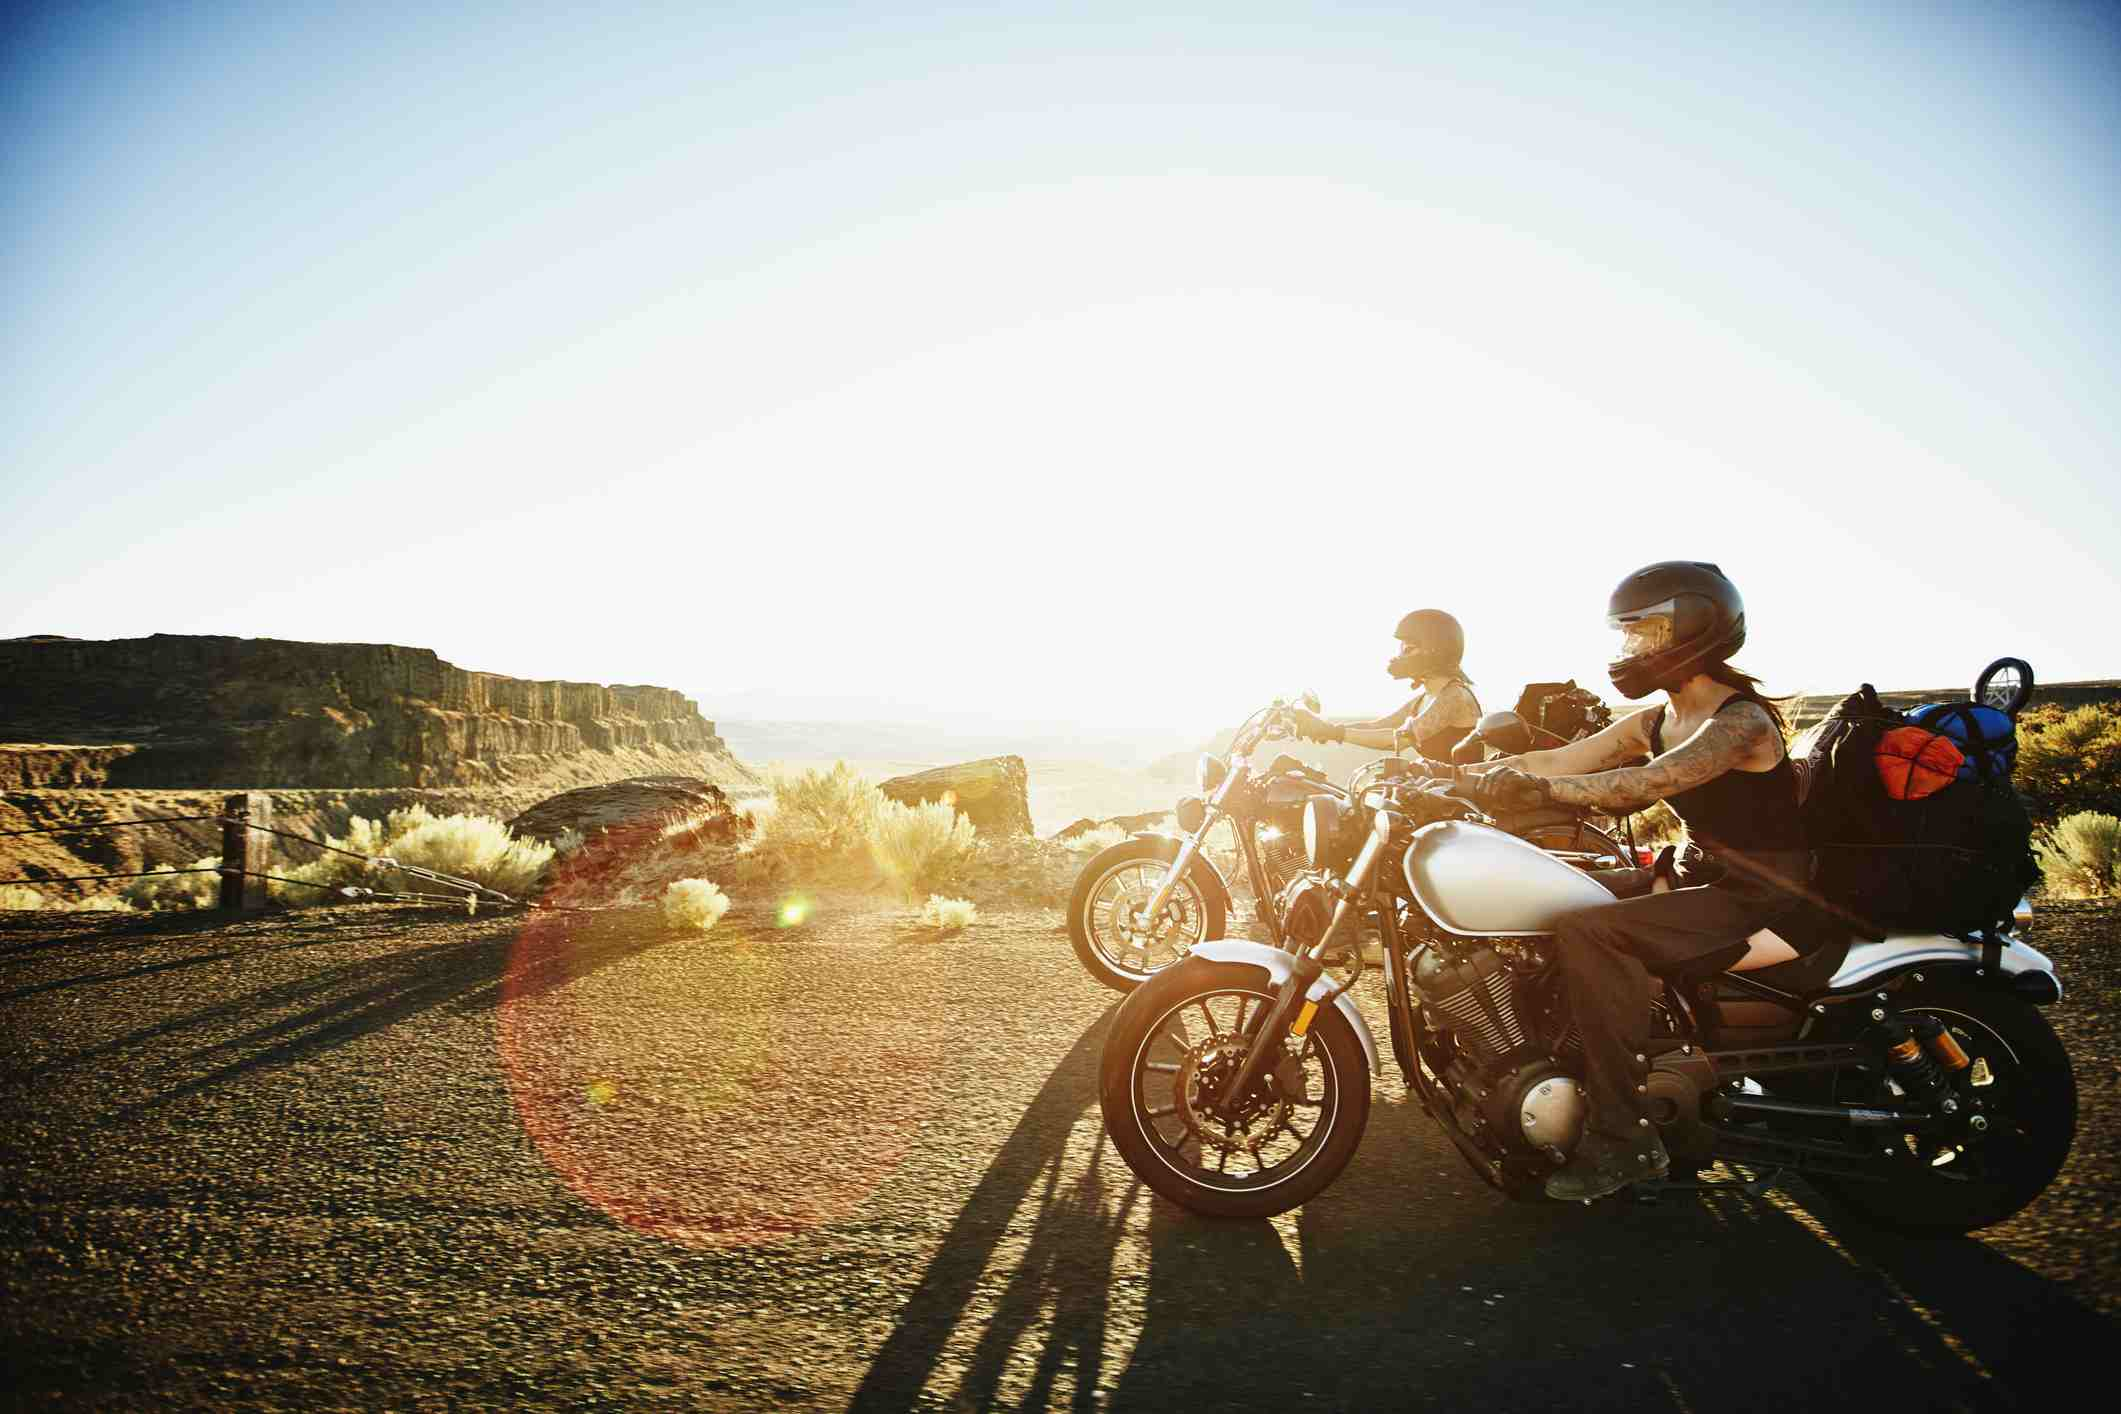 Female motorcyclists riding on desert canyon road on summer evening